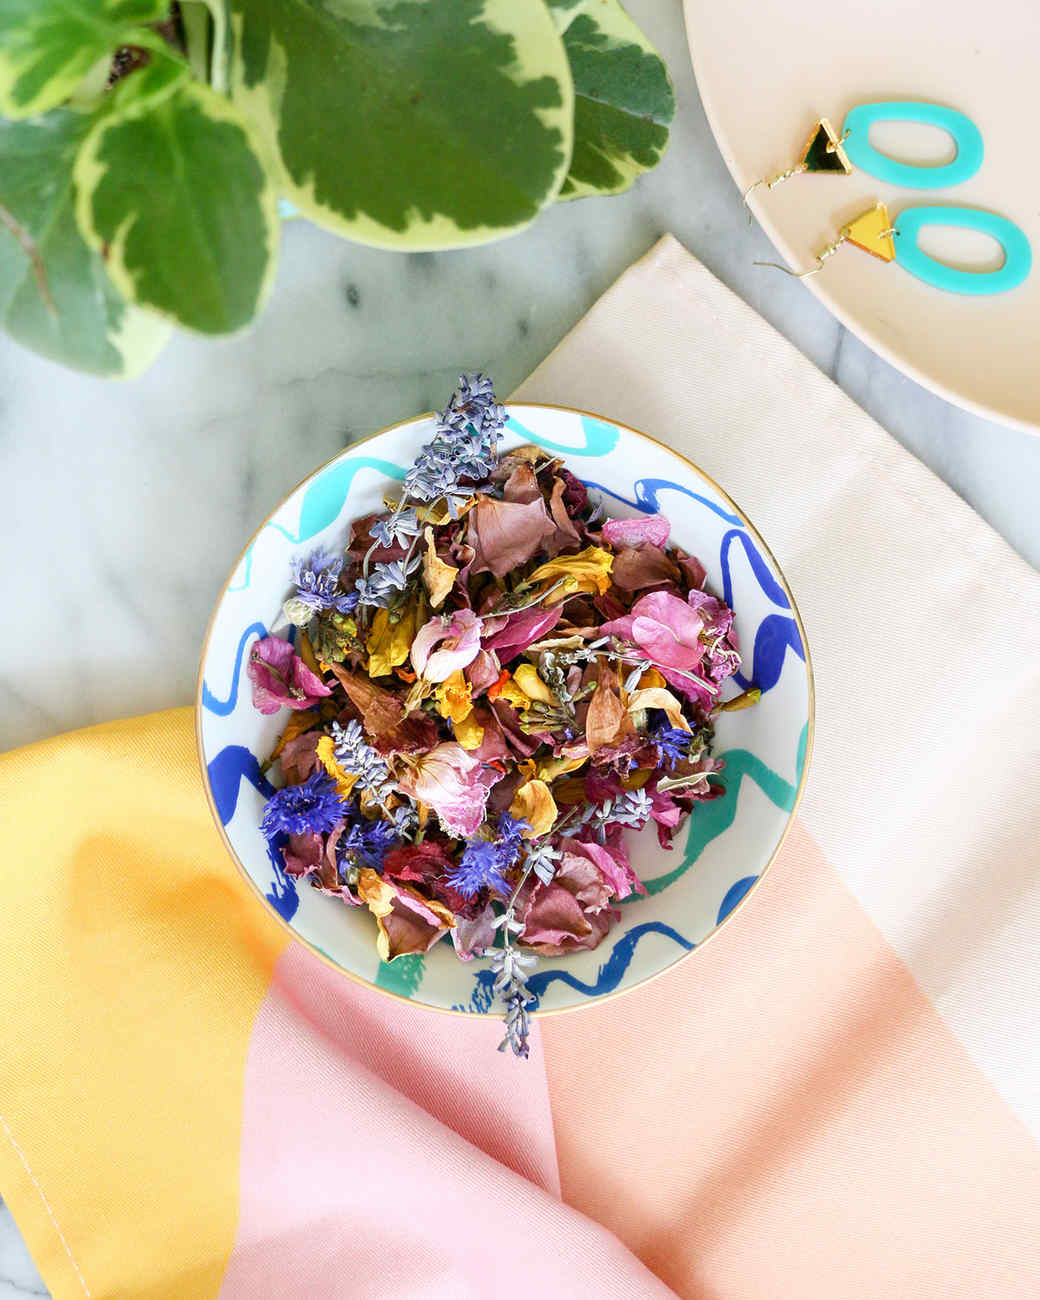 ornate bowl of potpourri with plant and earrings